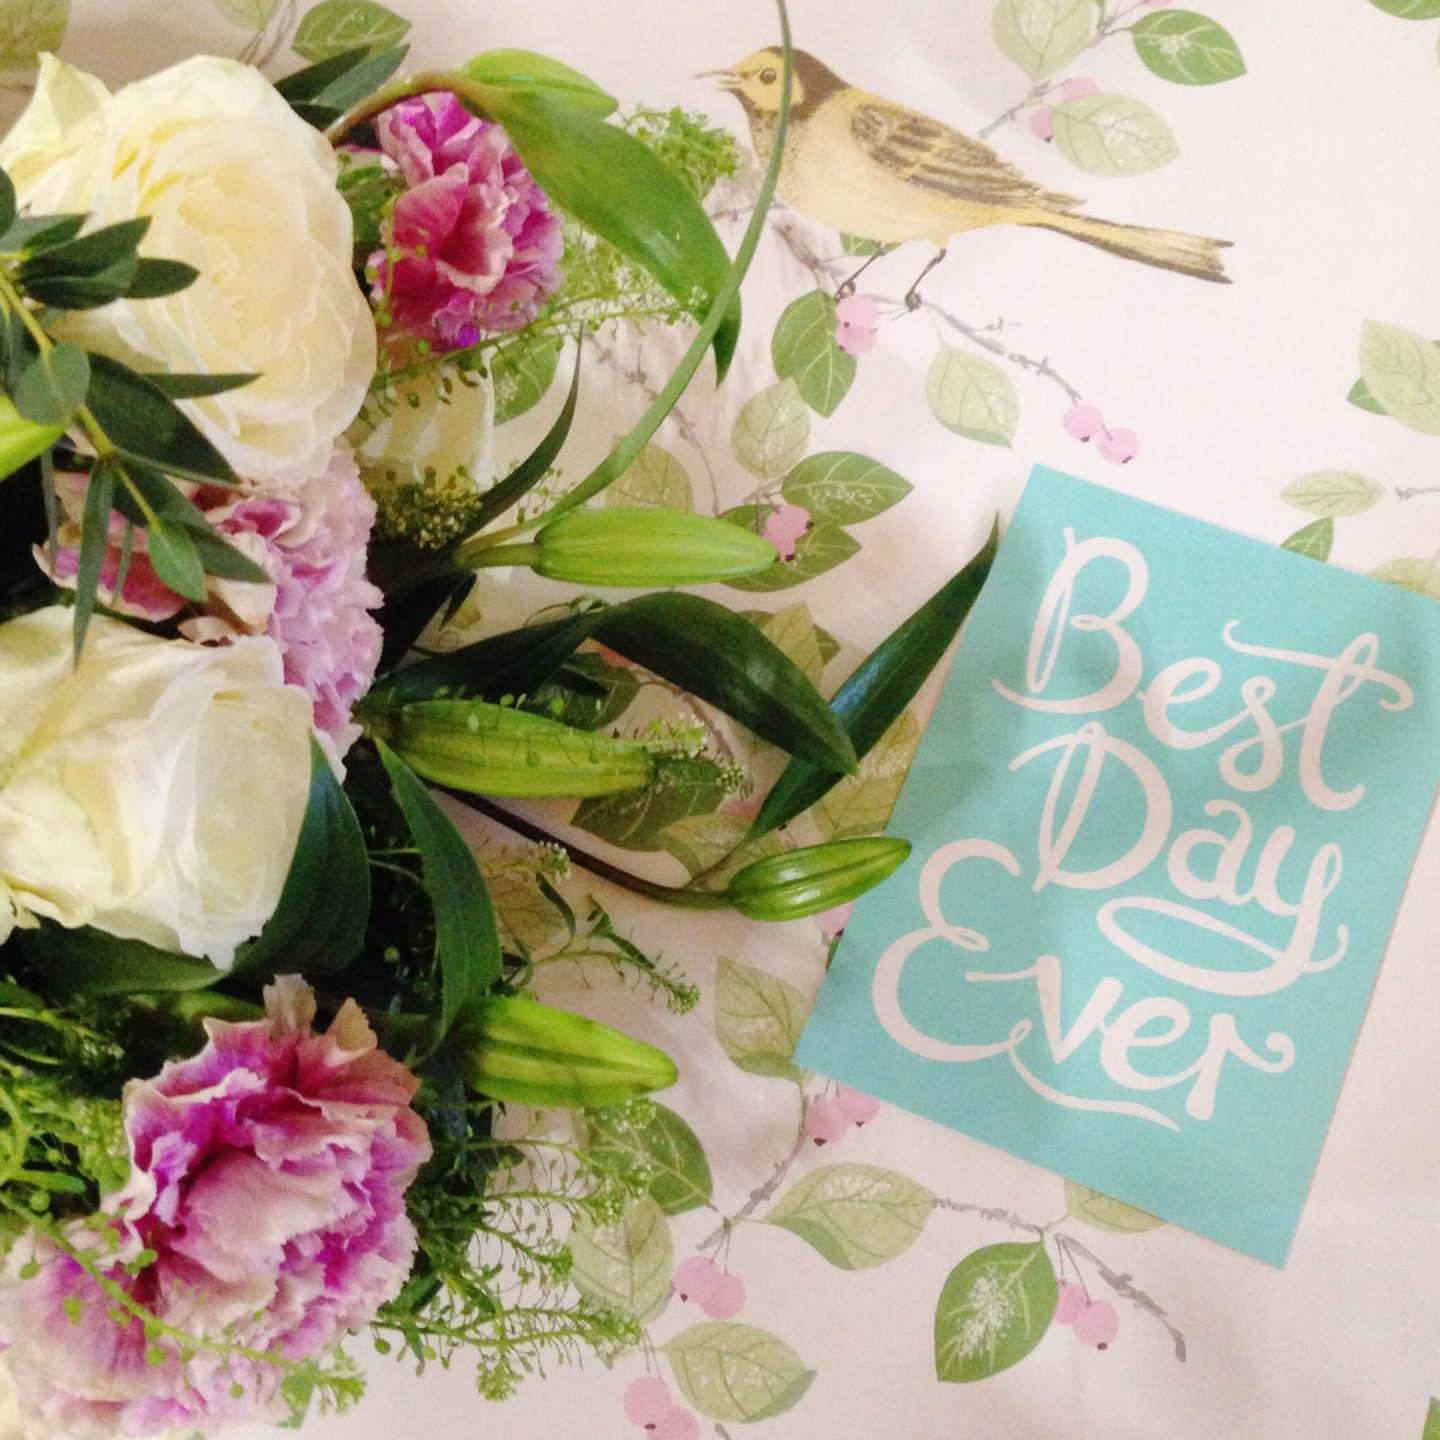 Celebrating Mother's Day with Blossoming Gifts